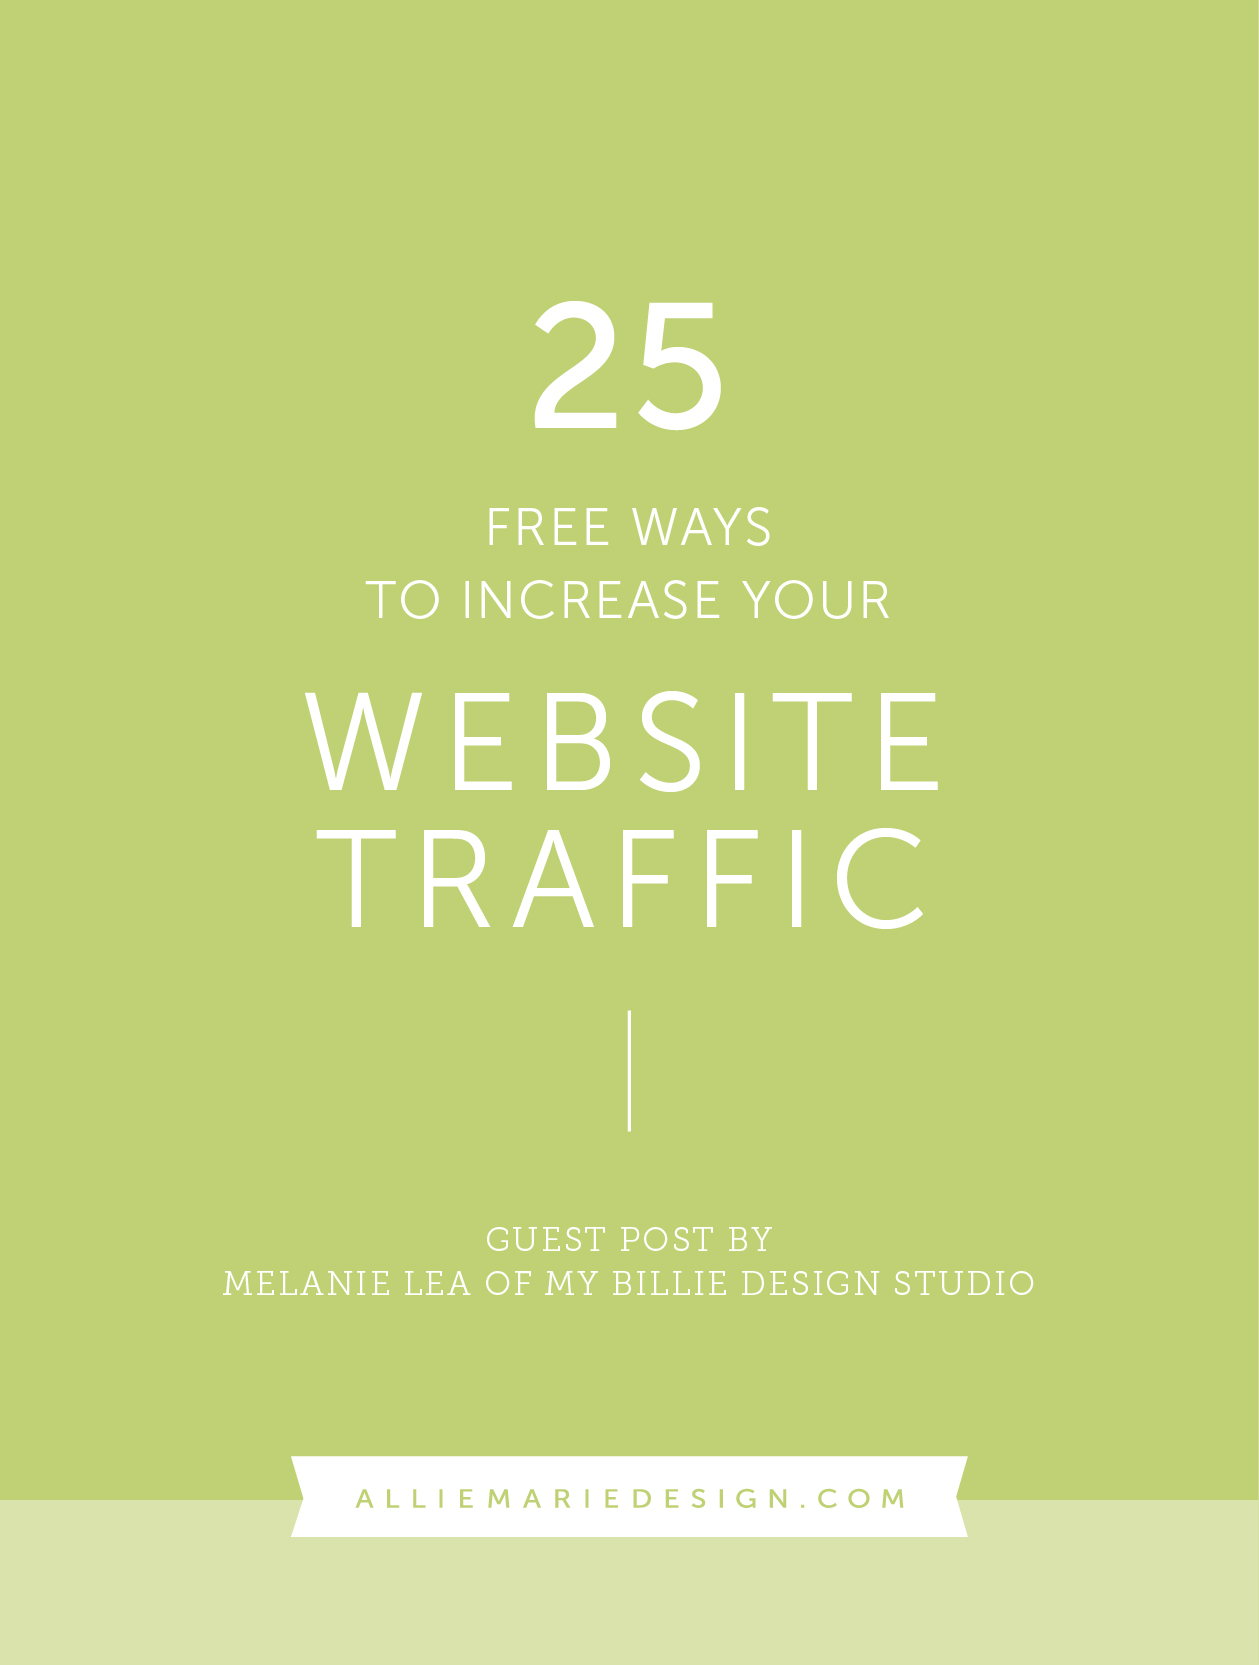 25 Free Ways to Increase Website Traffic  |  Guest Blog Post by Melanie Lea of My Billie Design Studio  |  SEO Tips, Marketing Tips, Blogging Tips, Website Tips  |  AllieMarie Design